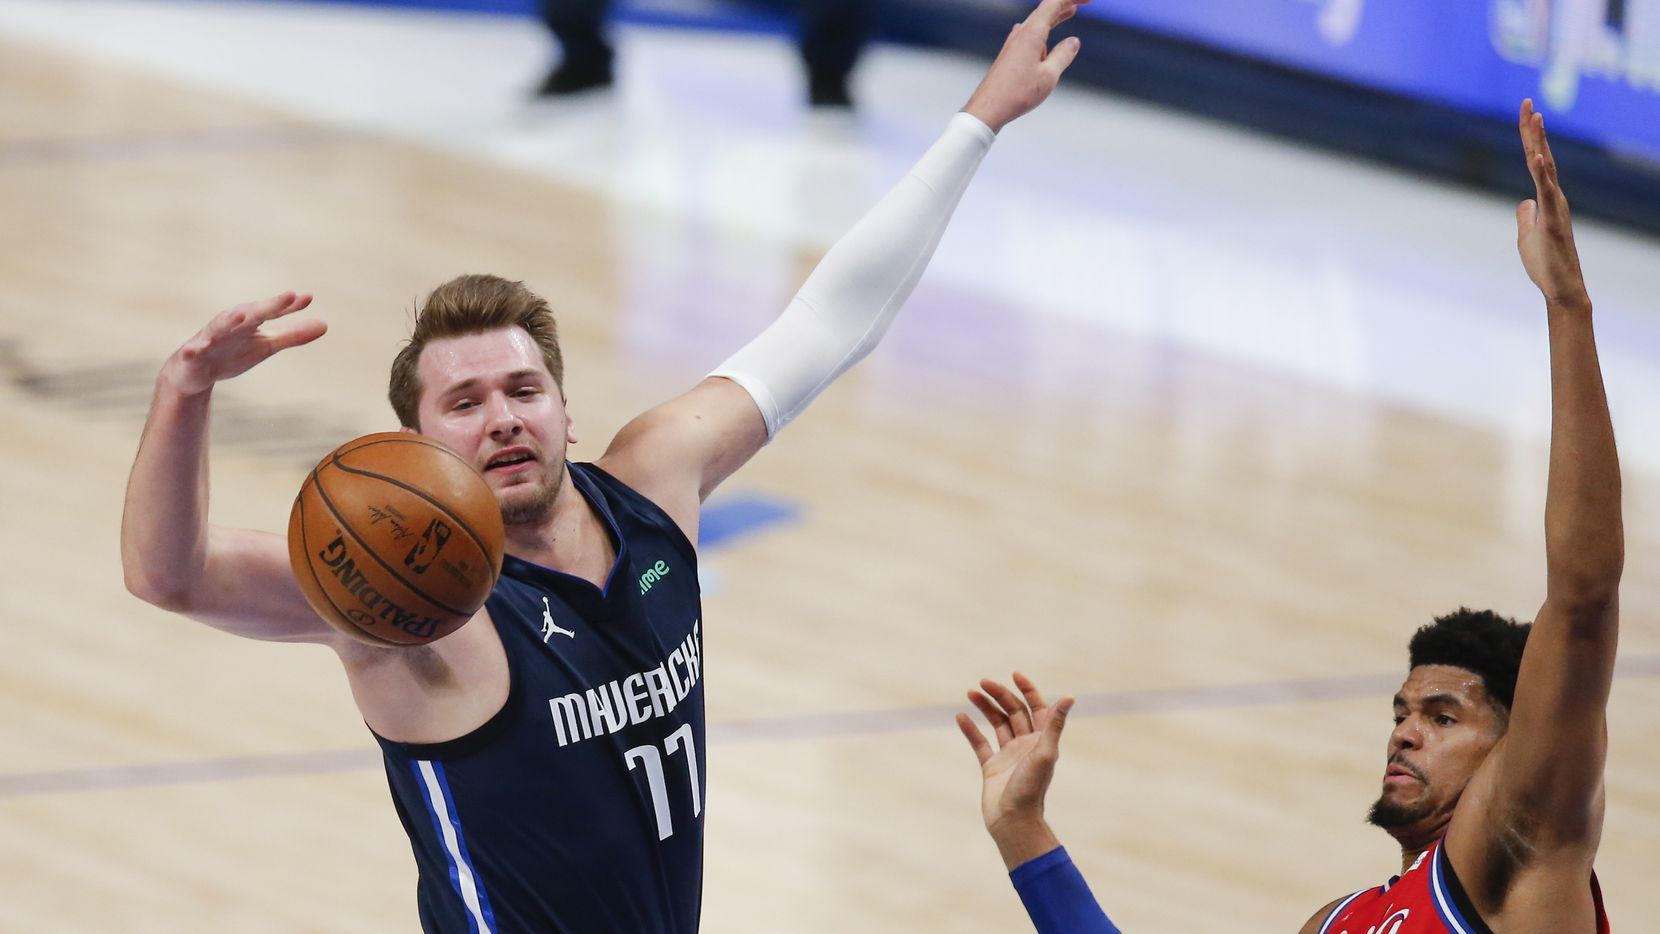 Dallas Mavericks guard Luka Doncic (77) and Philadelphia 76ers forward Tobias Harris (12) battle for a loose ball during the first half of an NBA basketball game in Dallas, Monday, April 12, 2021.